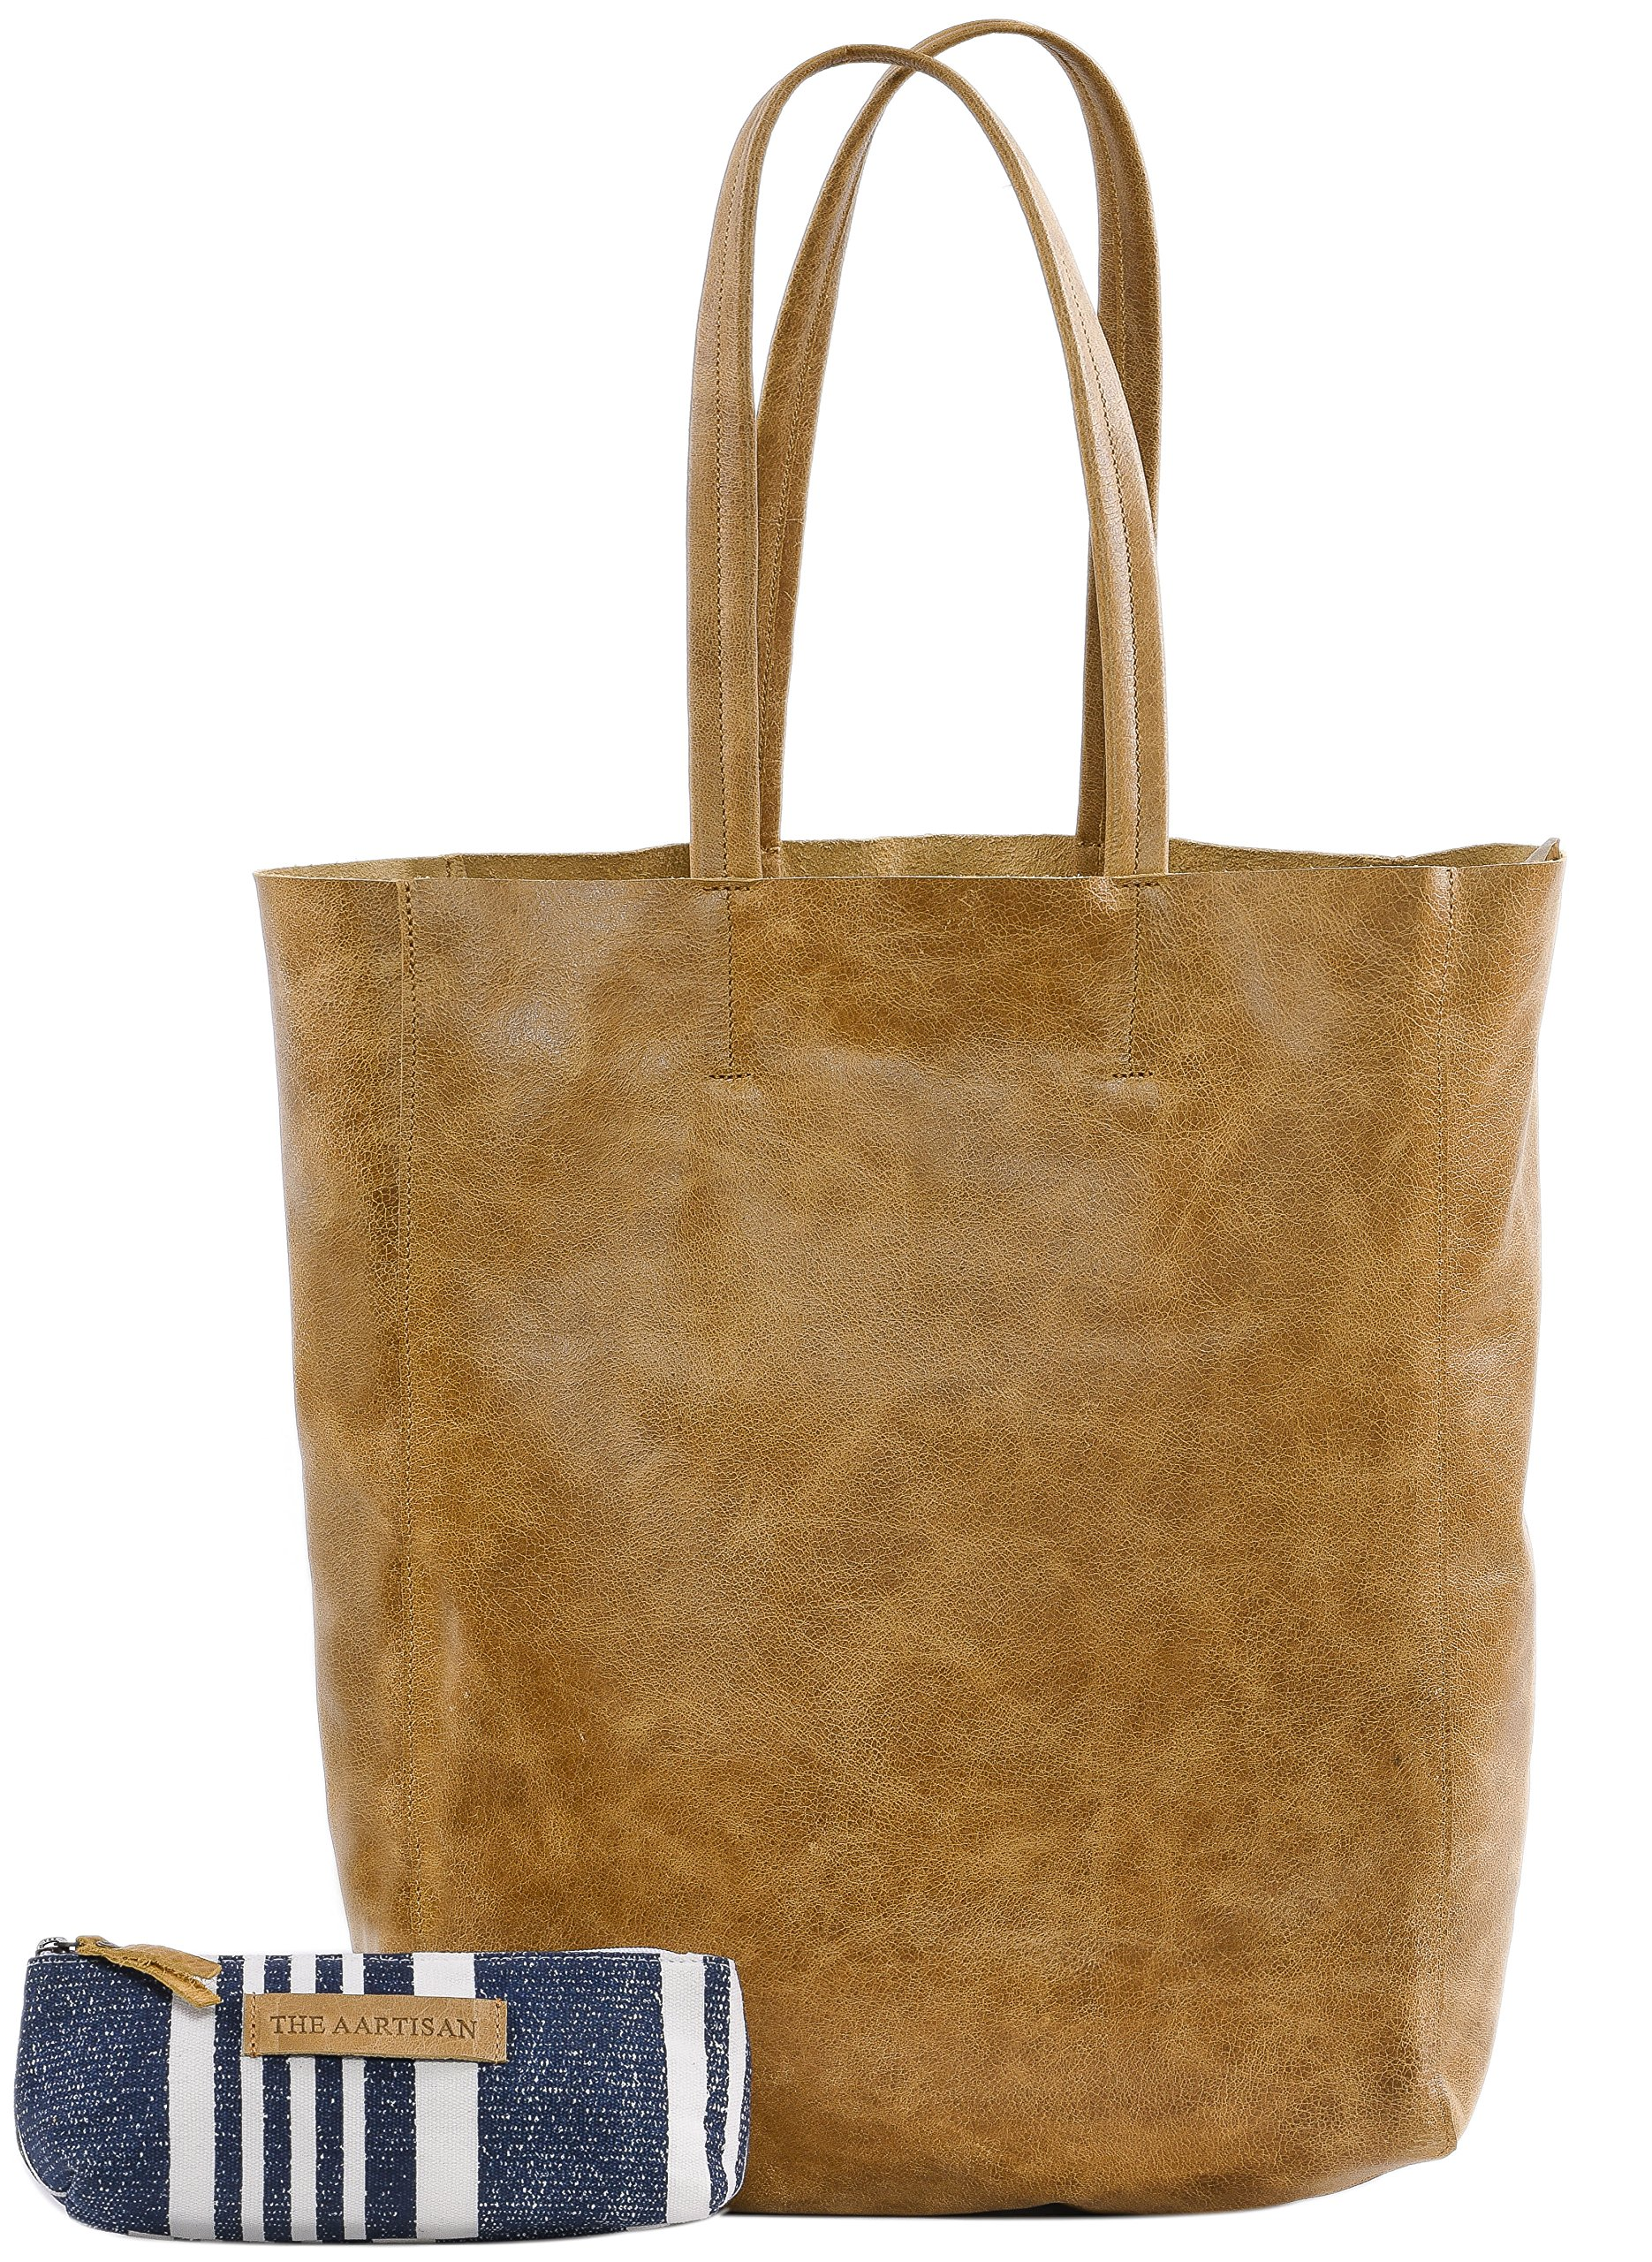 The Aartisan Women's Vintage Leather Tote Bag 17 inch, Soft Full Grain Leather in Chestnut Color,Multi Functional Tote Bag